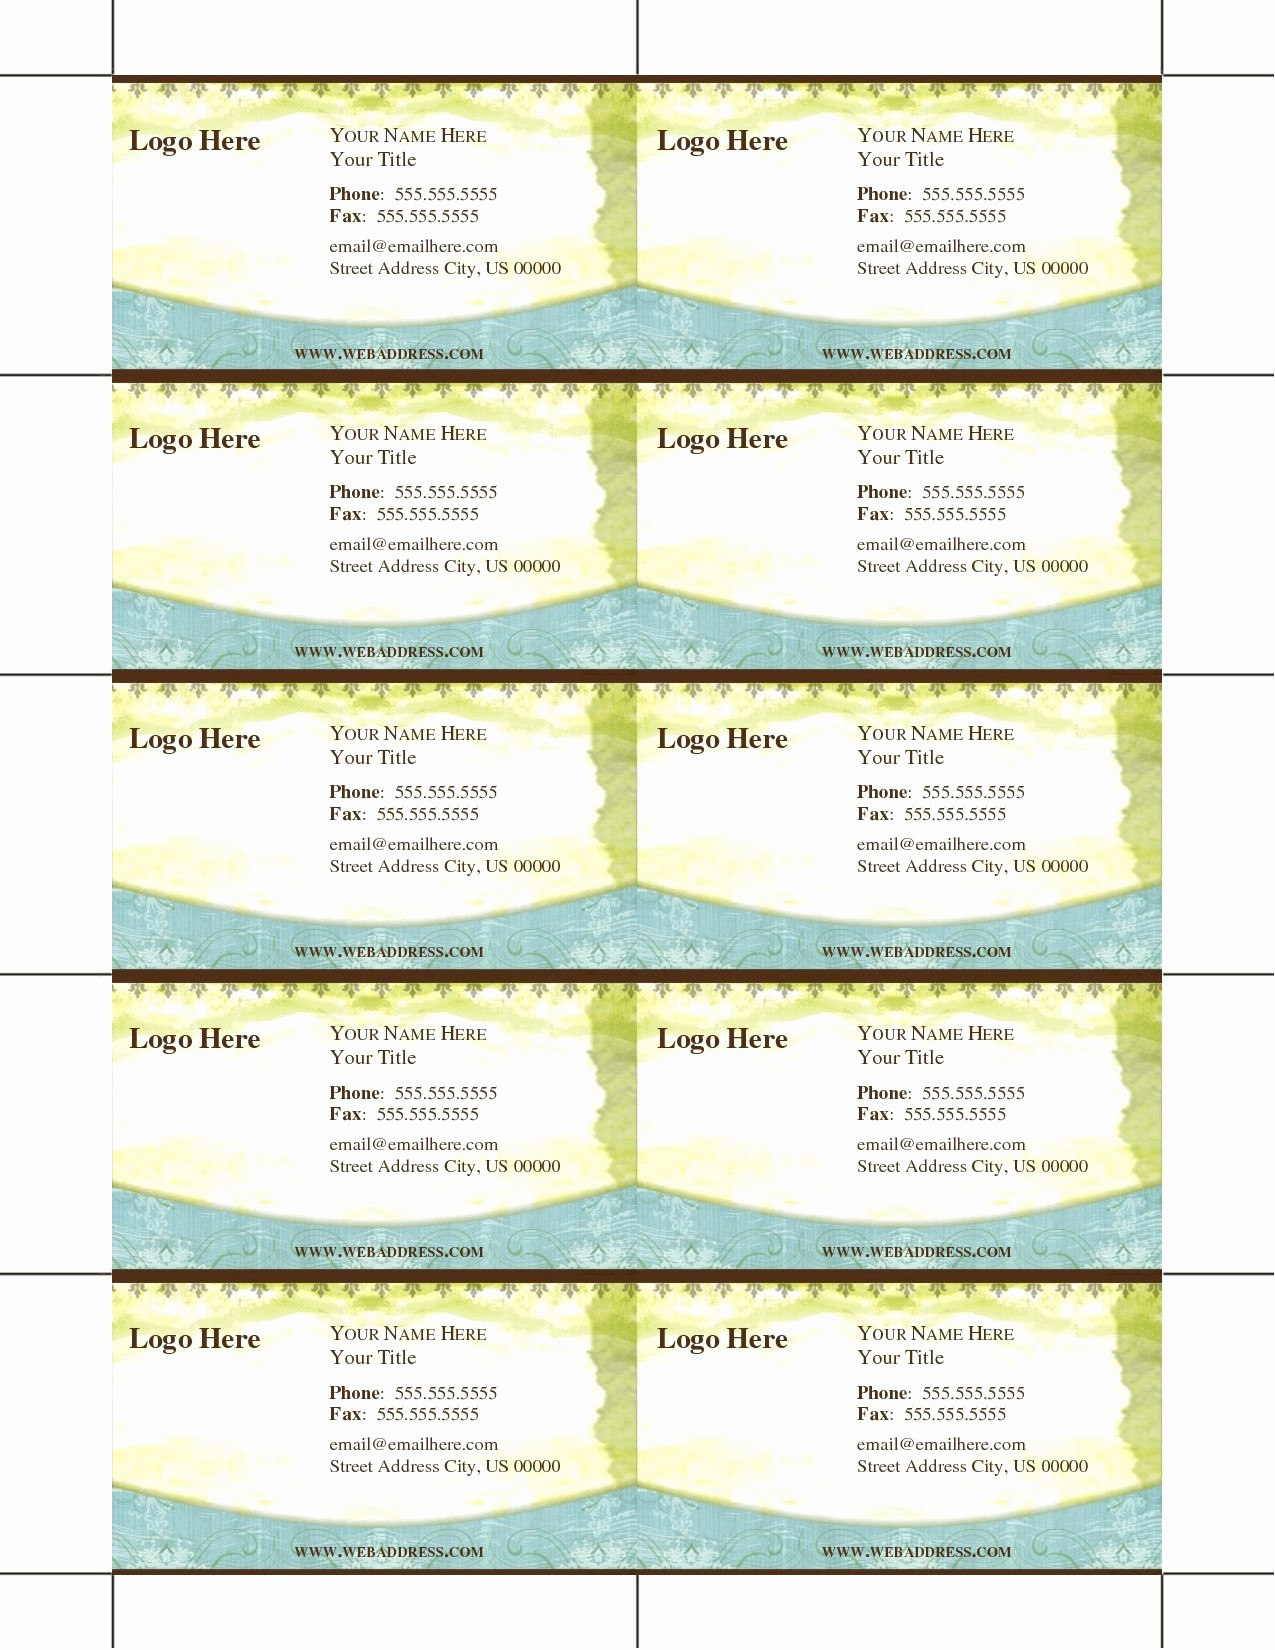 Ms Word Templates Business Cards New Luxury Blank Business Card Template Microsoft Word